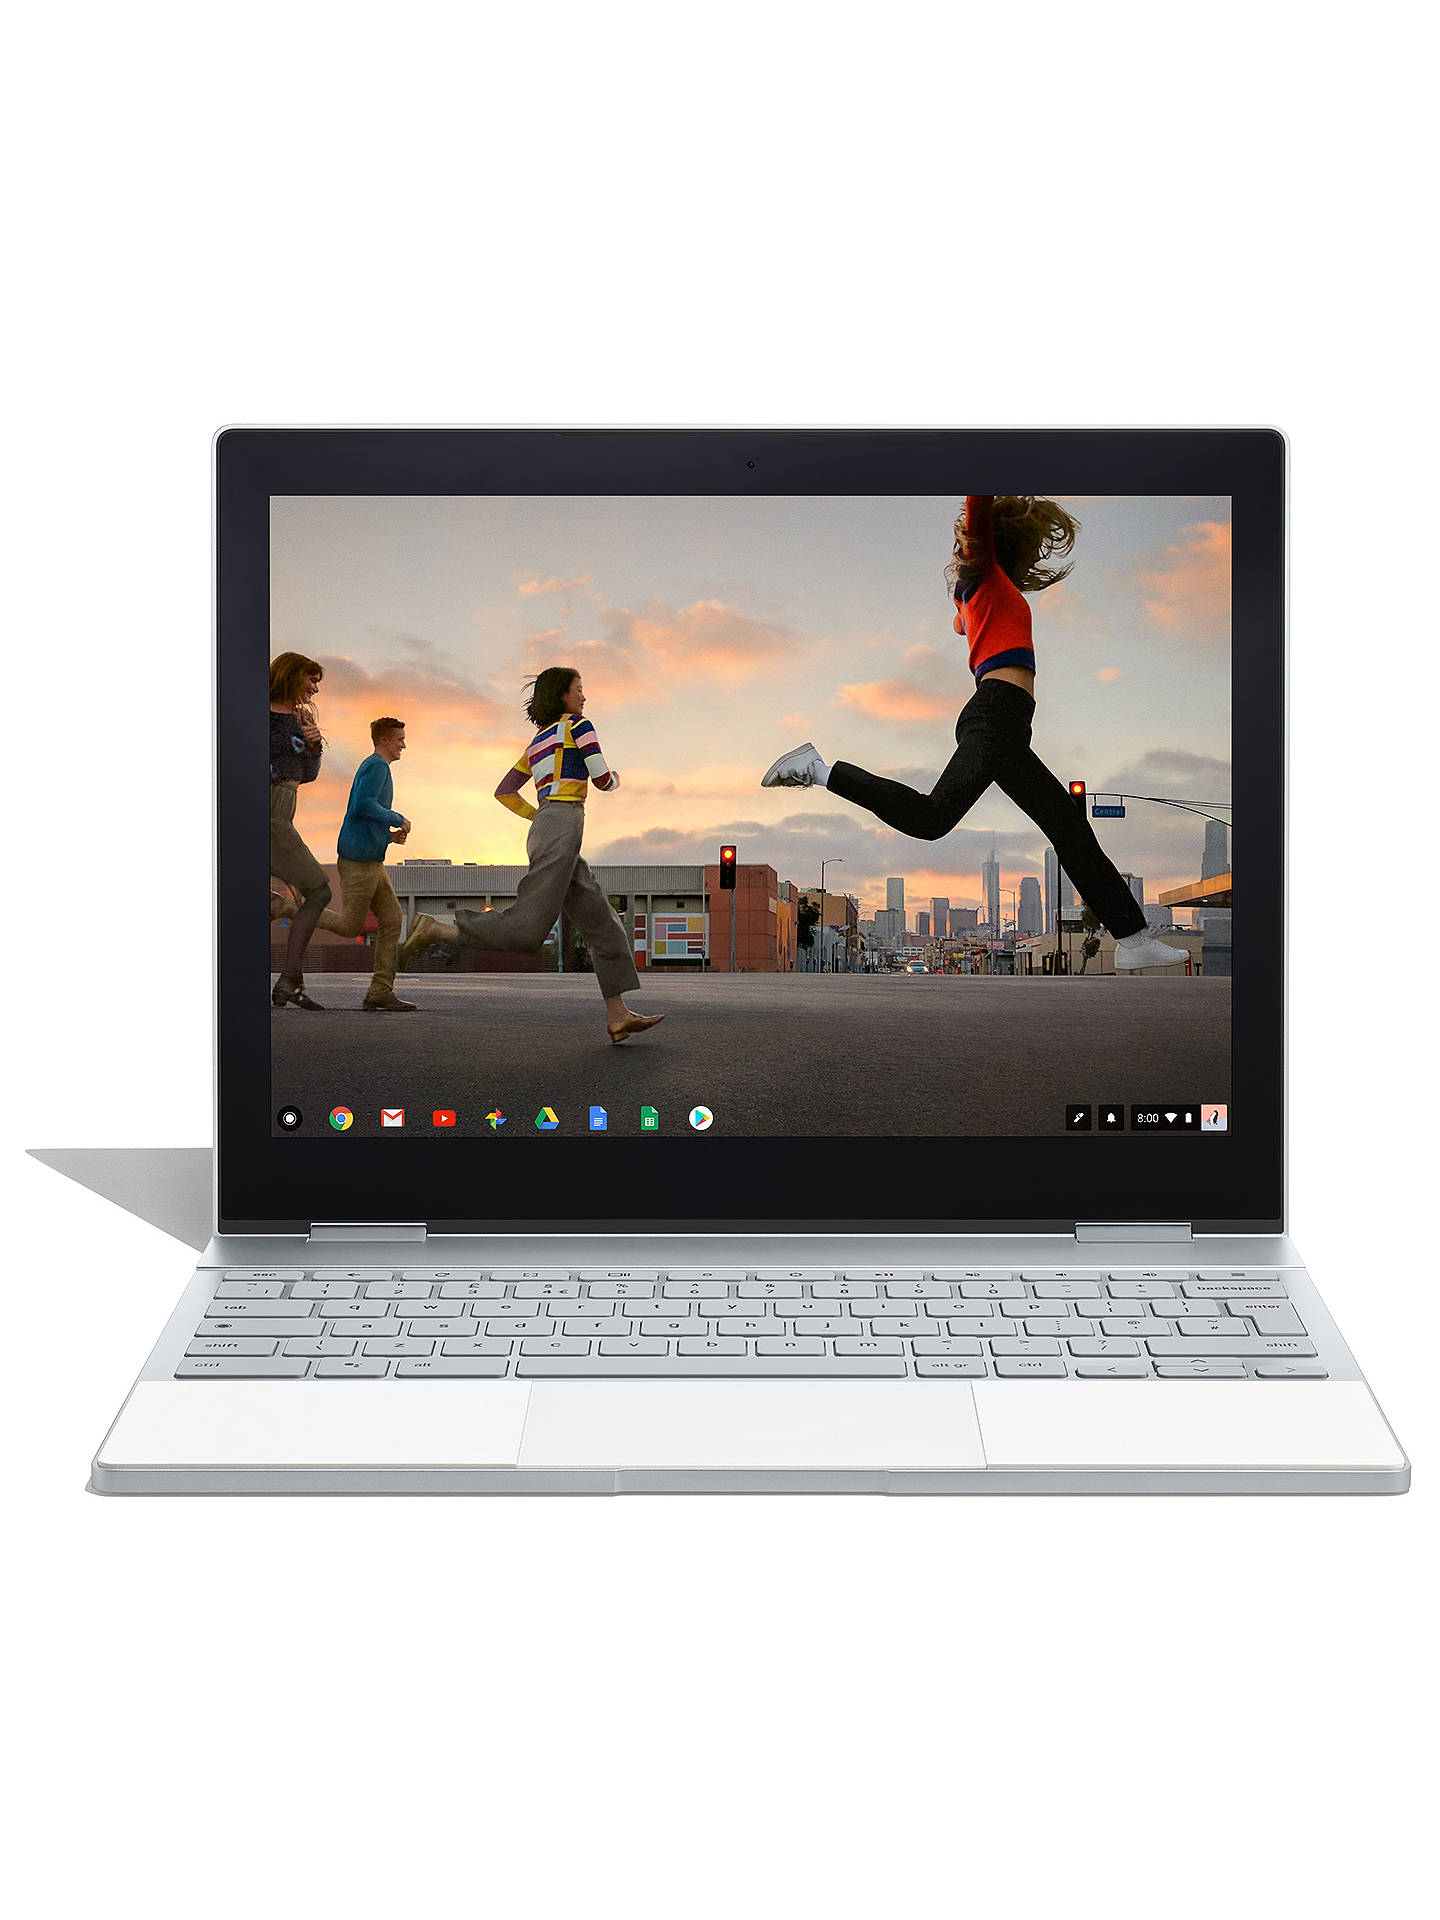 "BuyGoogle Pixelbook, Intel Core i5, 8GB RAM, 128GB SSD, 12.3"" Quad HD Touchscreen, Rock Candy Online at johnlewis.com"